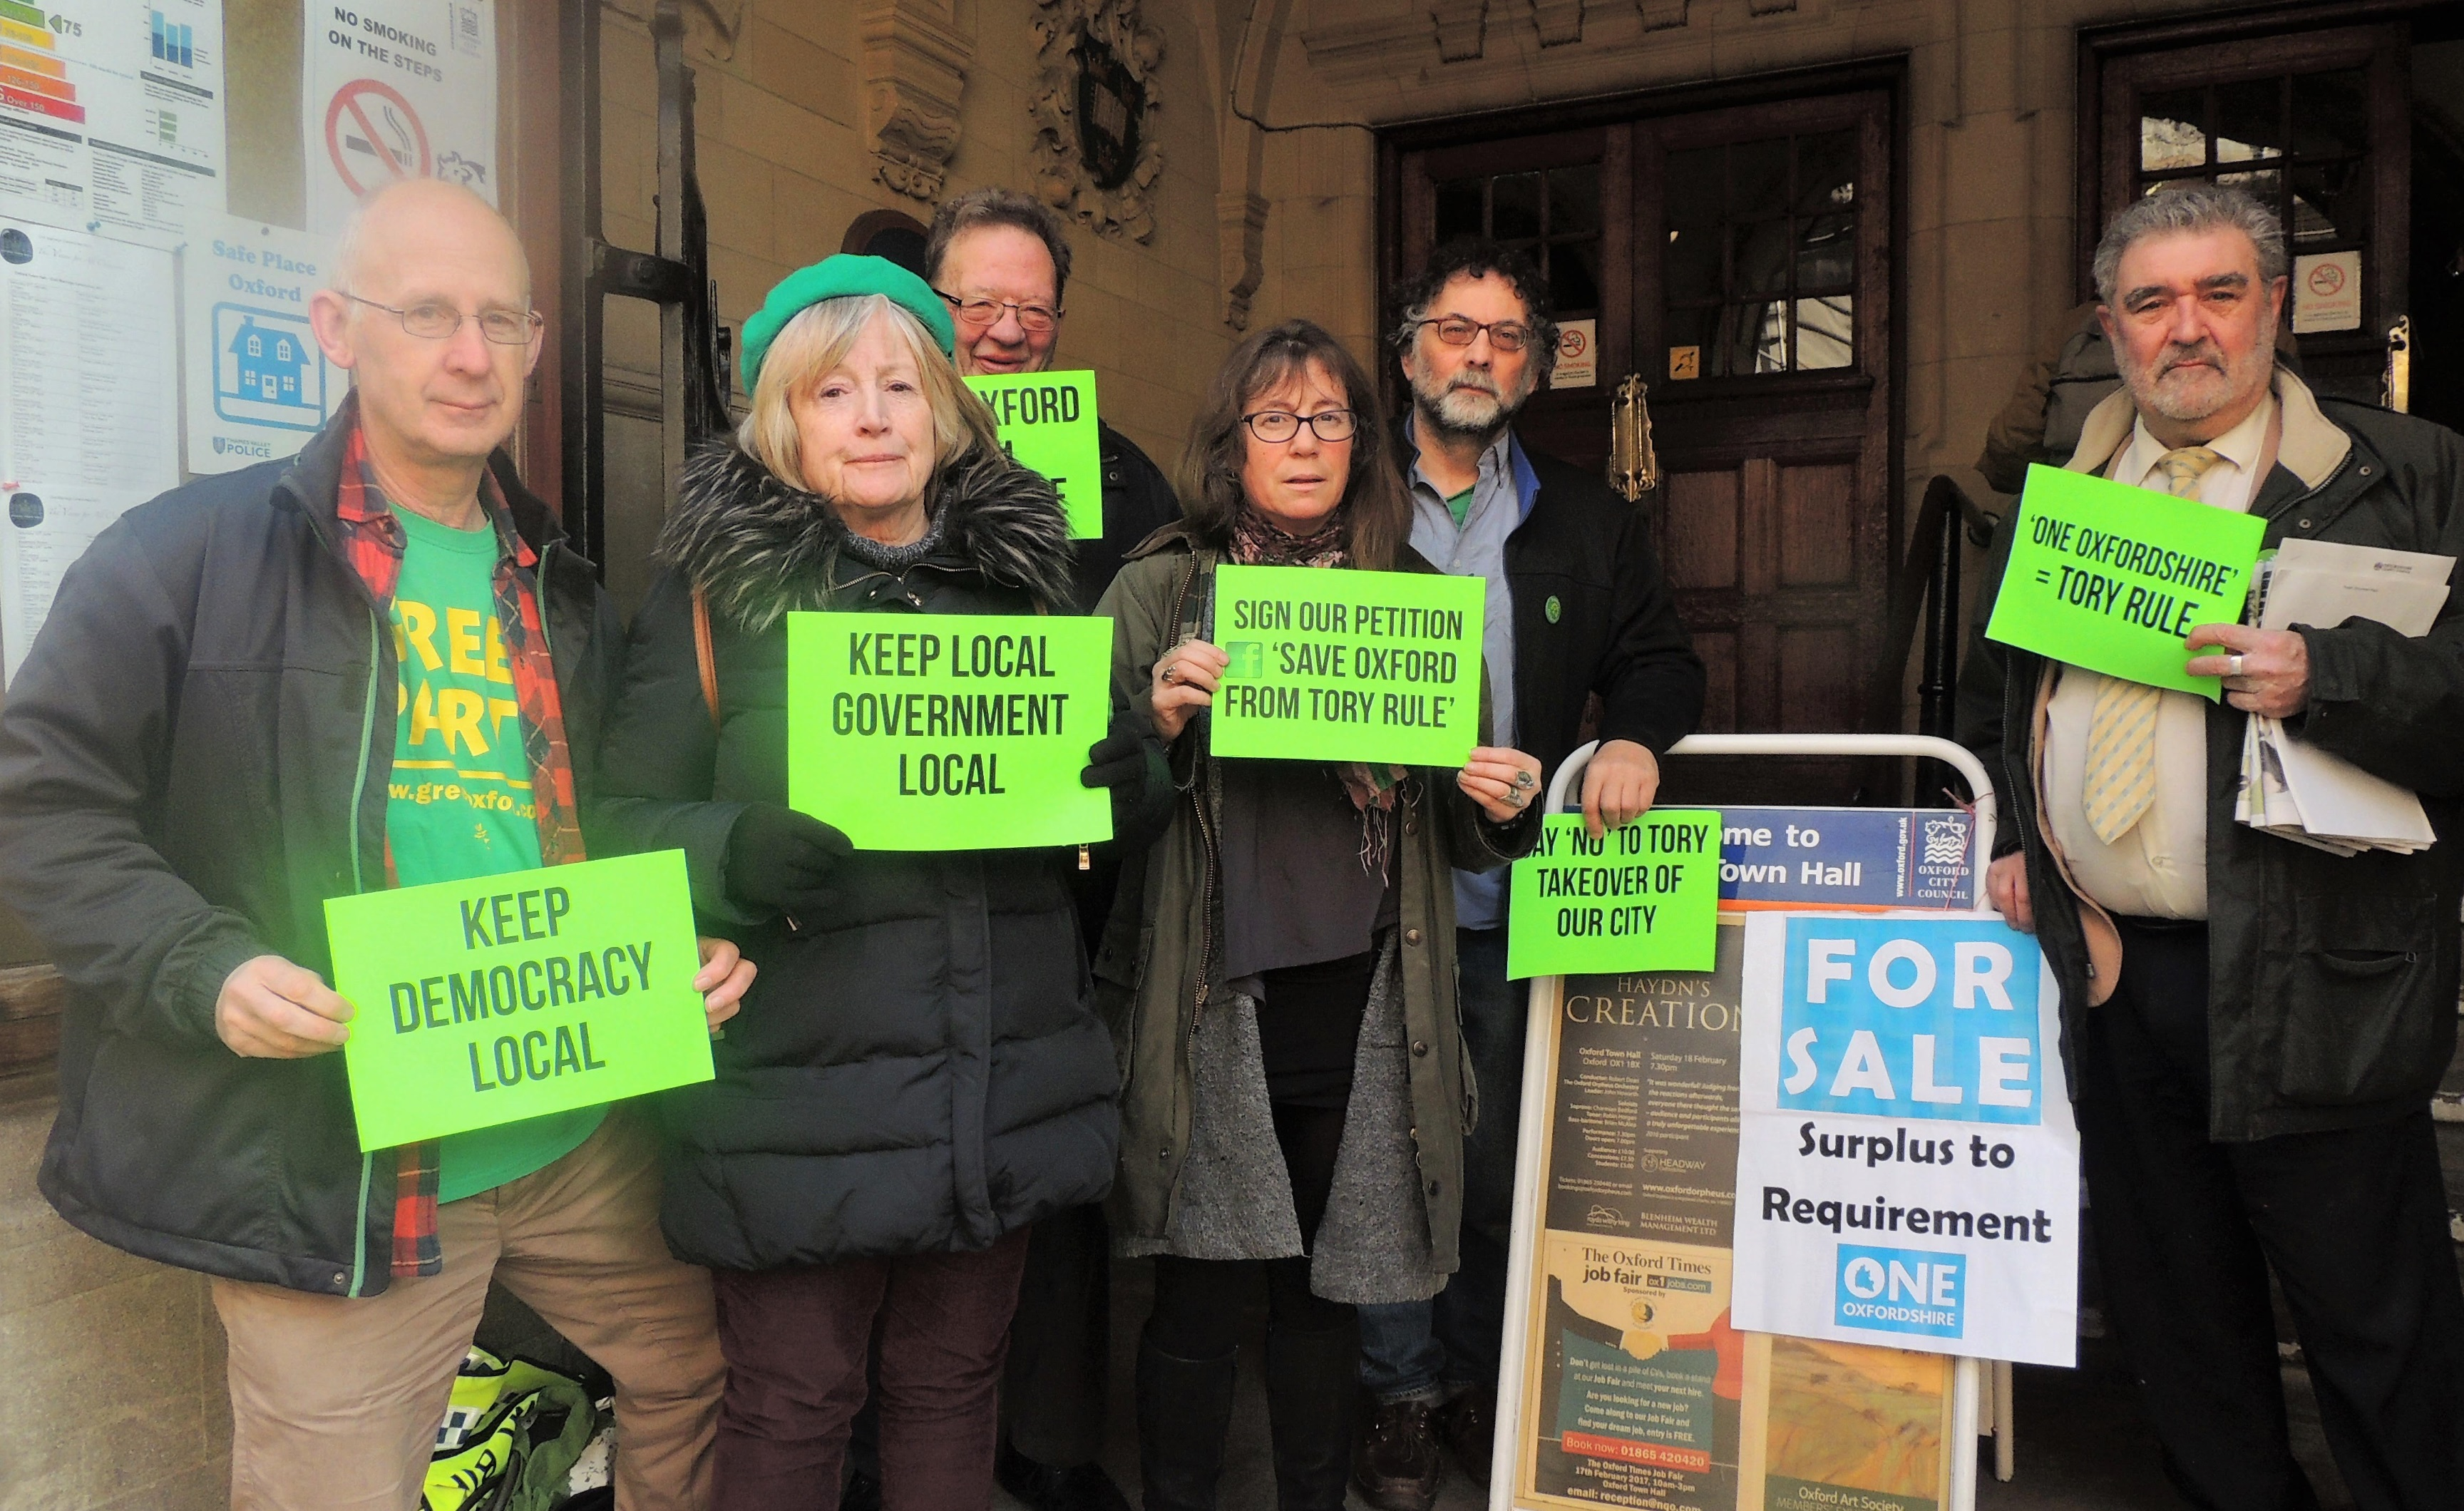 SaveOxfordFromToryRule_TownHall_20170214.jpg